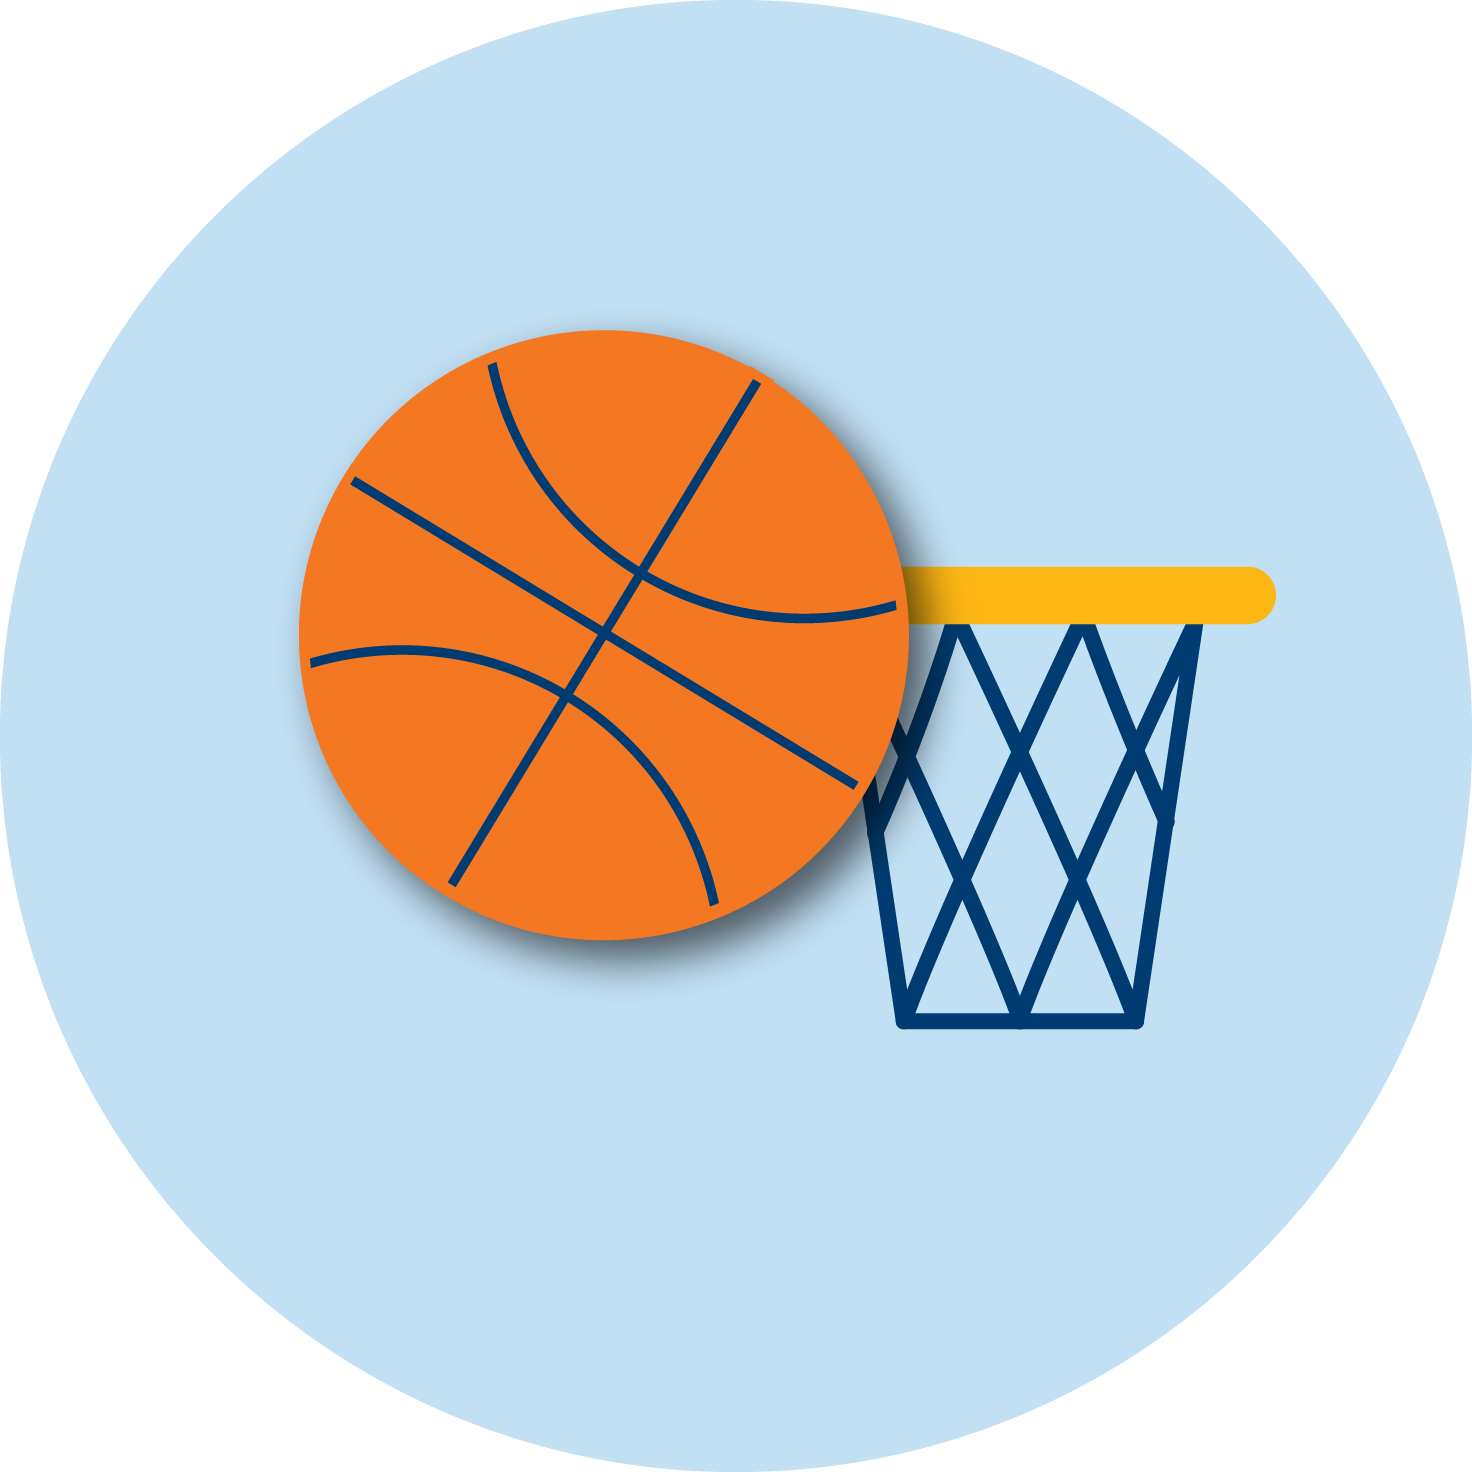 A basketball and a net.